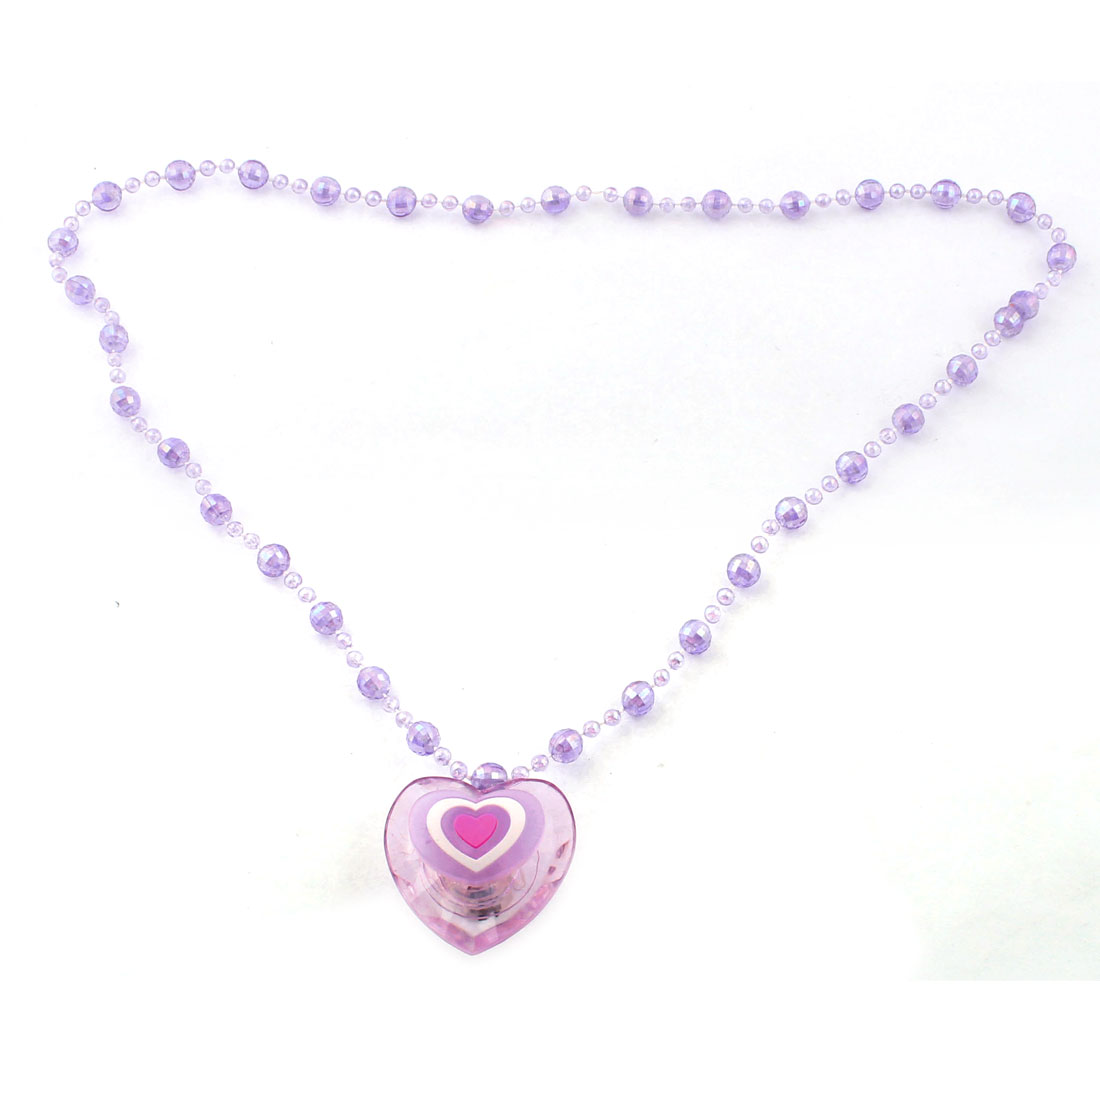 Heart Pendant Light Up Flashing Necklace Accessory Purple Clear